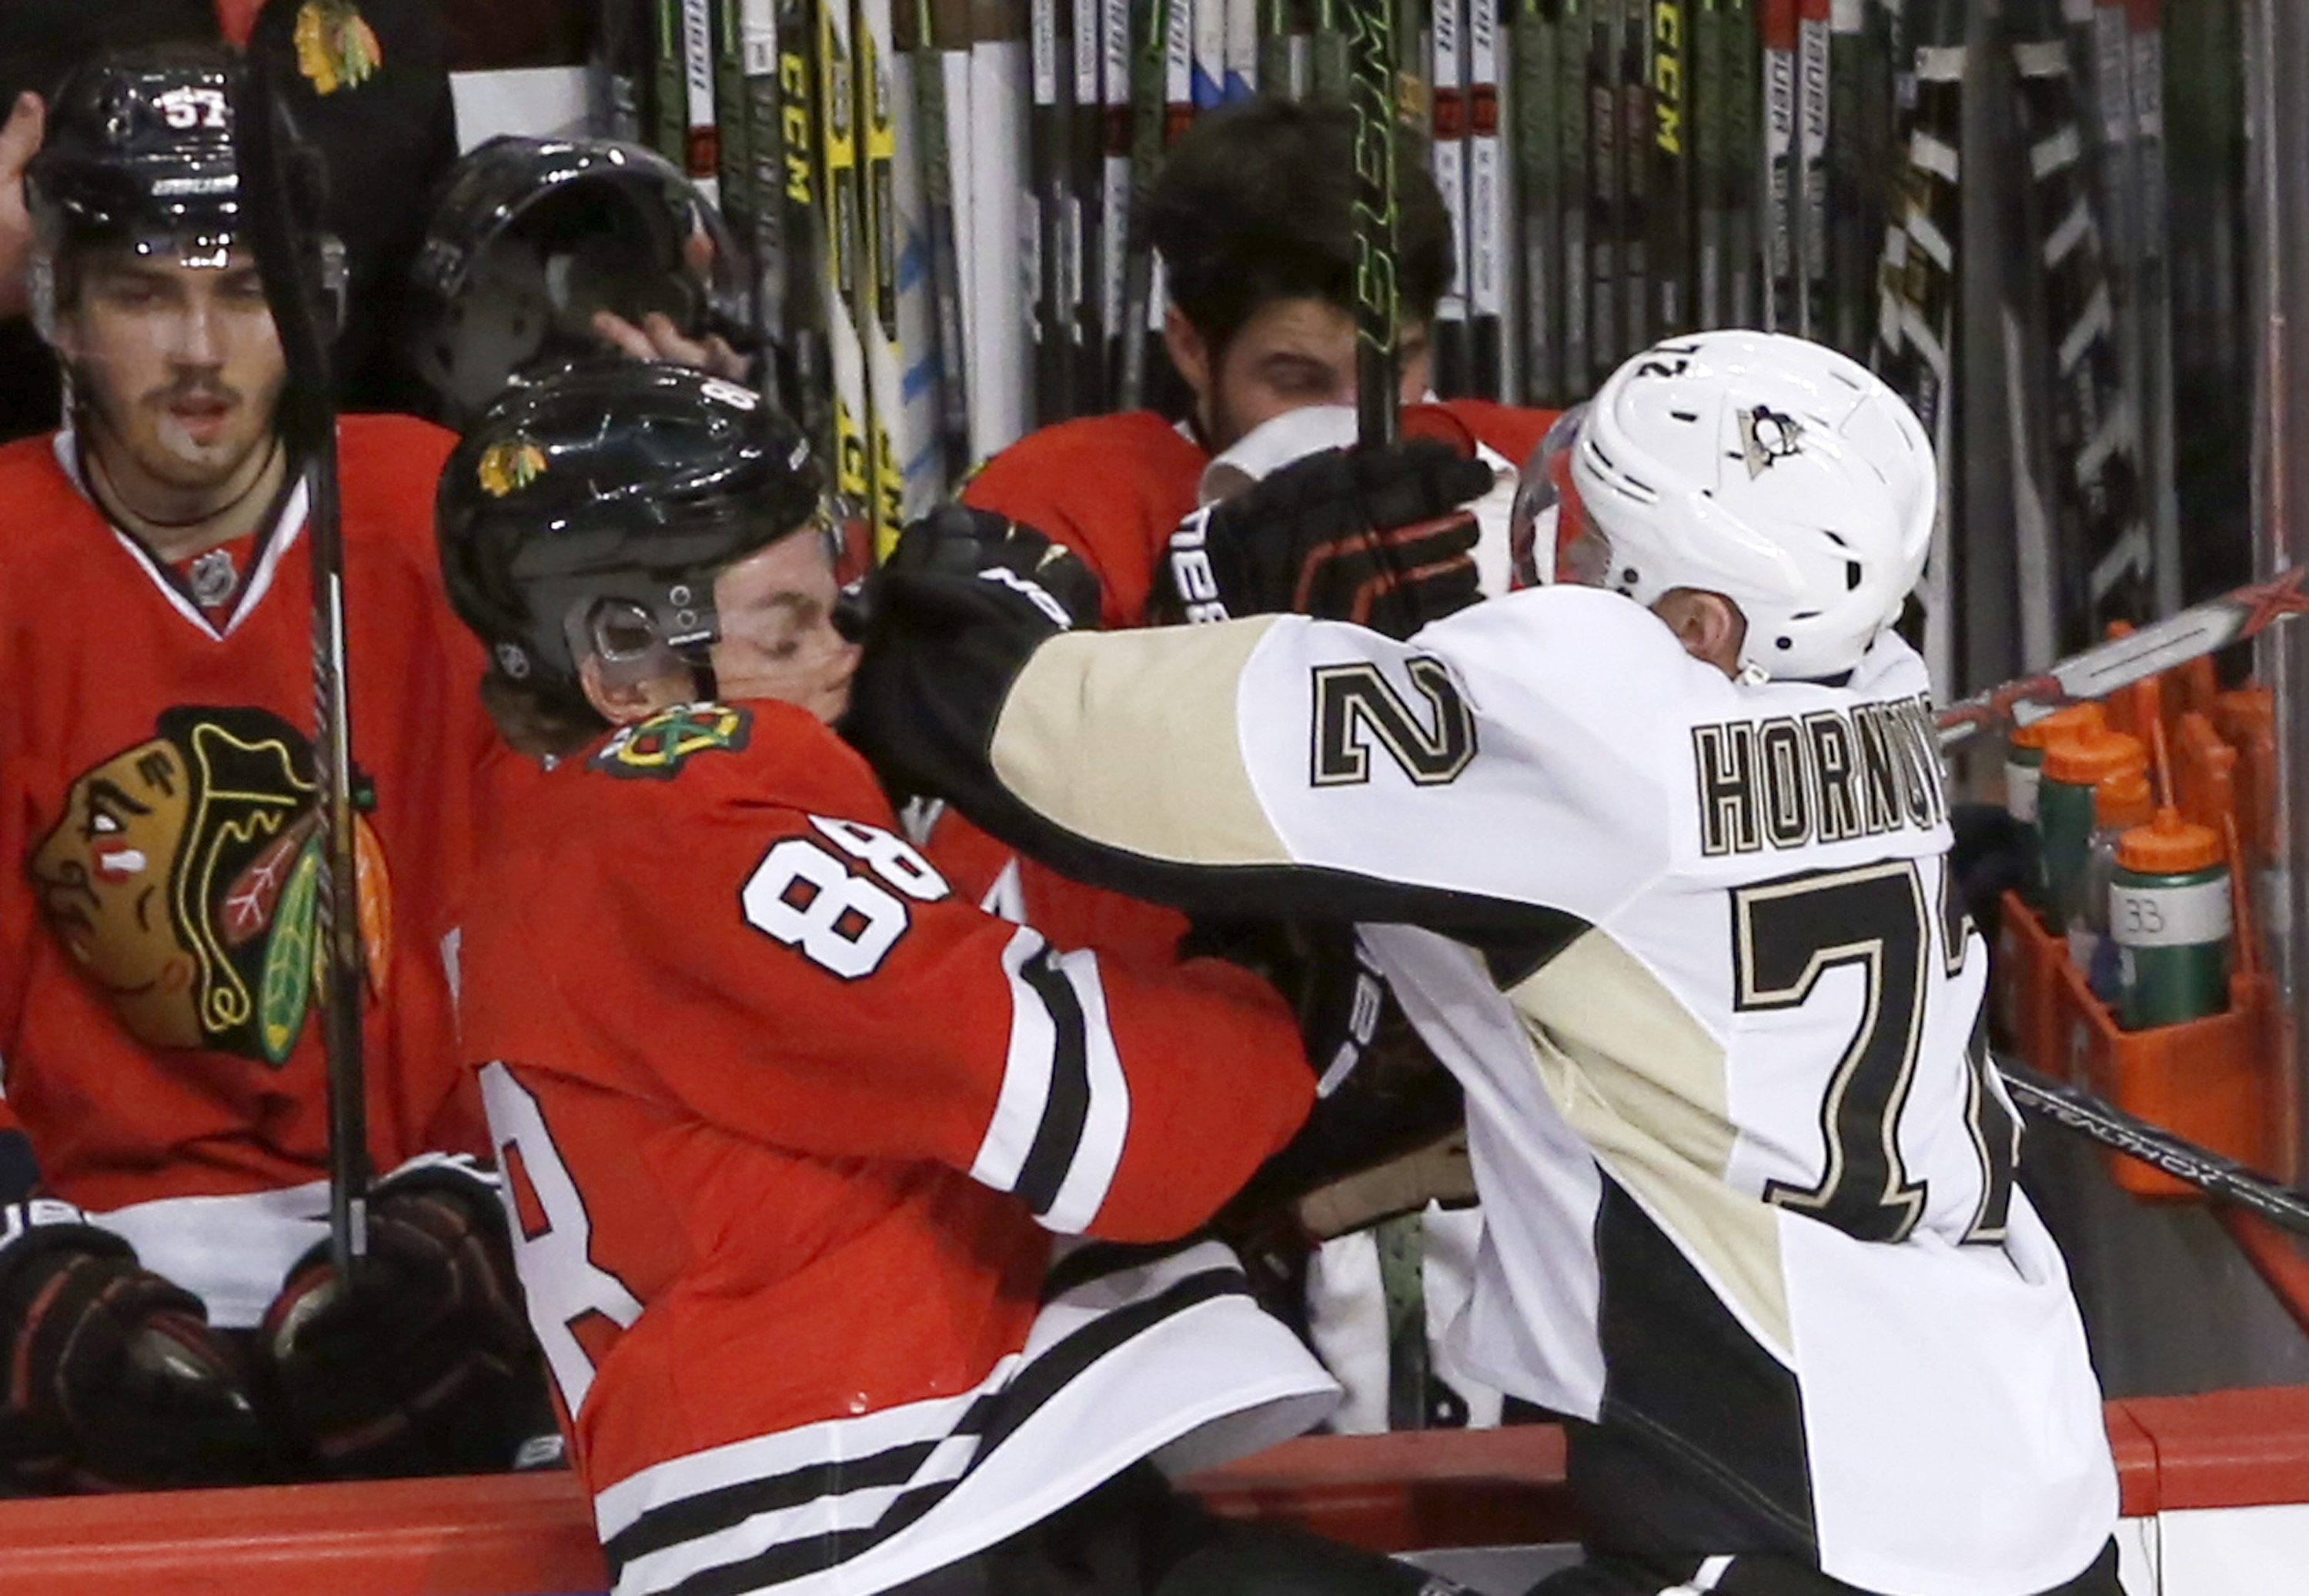 Pittsburgh Penguins right wing Patric Hornqvist (72) checks Chicago Blackhawks right wing Patrick Kane in front of the Blackhawks' bench during the first period of an NHL hockey game Wednesday, Jan. 6, 2016, in Chicago. (AP Photo/Charles Rex Arbogast)